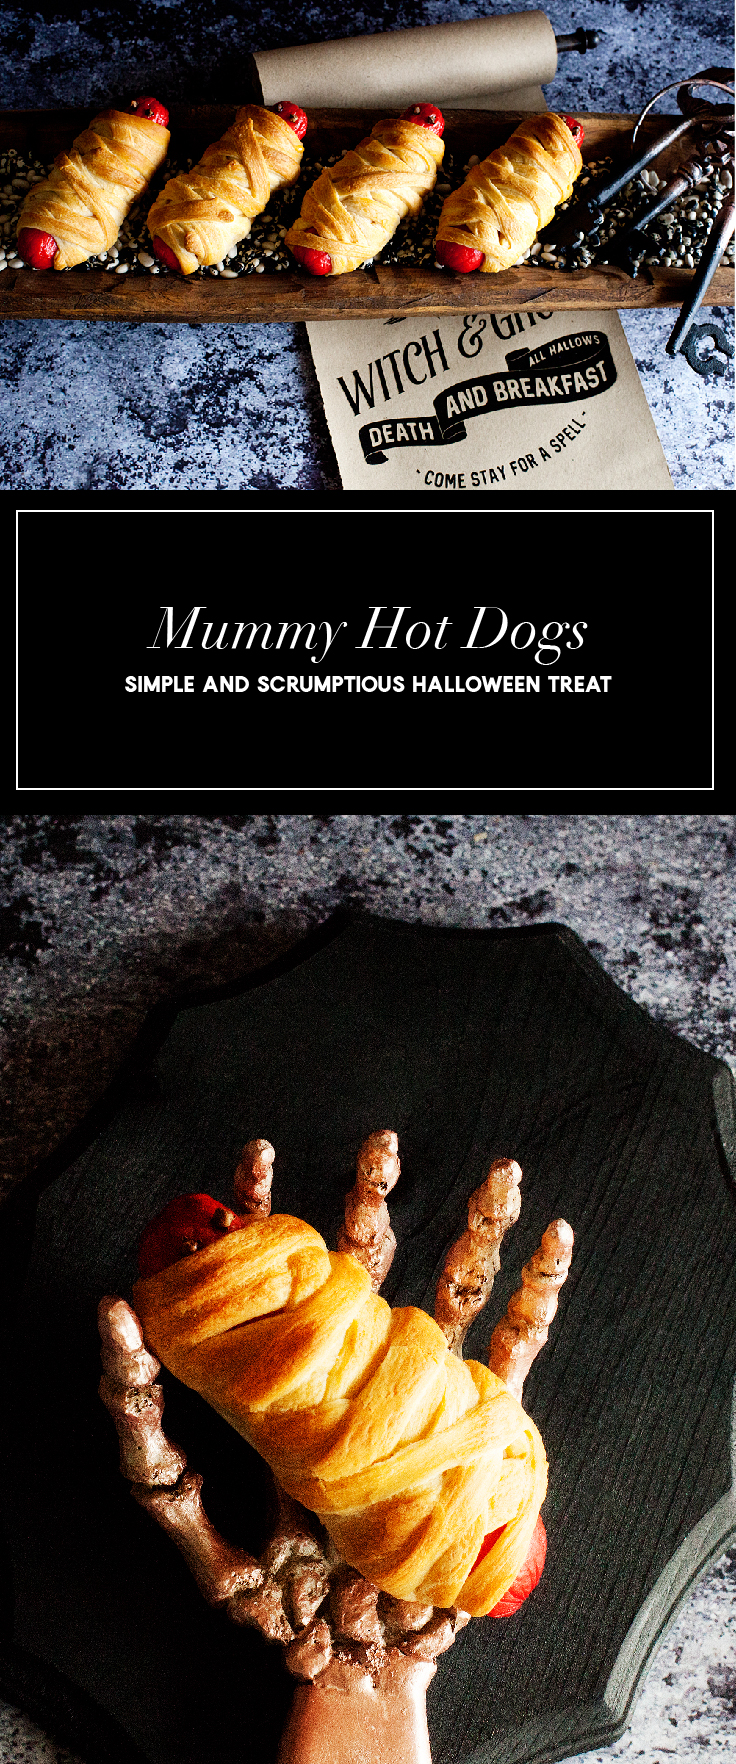 There's nothing better than a simple, scrumptious and slightly spooky treat for Halloween! Come learn how easy it is to make these frightfully delicious Mummy Hot Dogs for your little {and BIG} Trick-or-Treaters • WhipperBerry